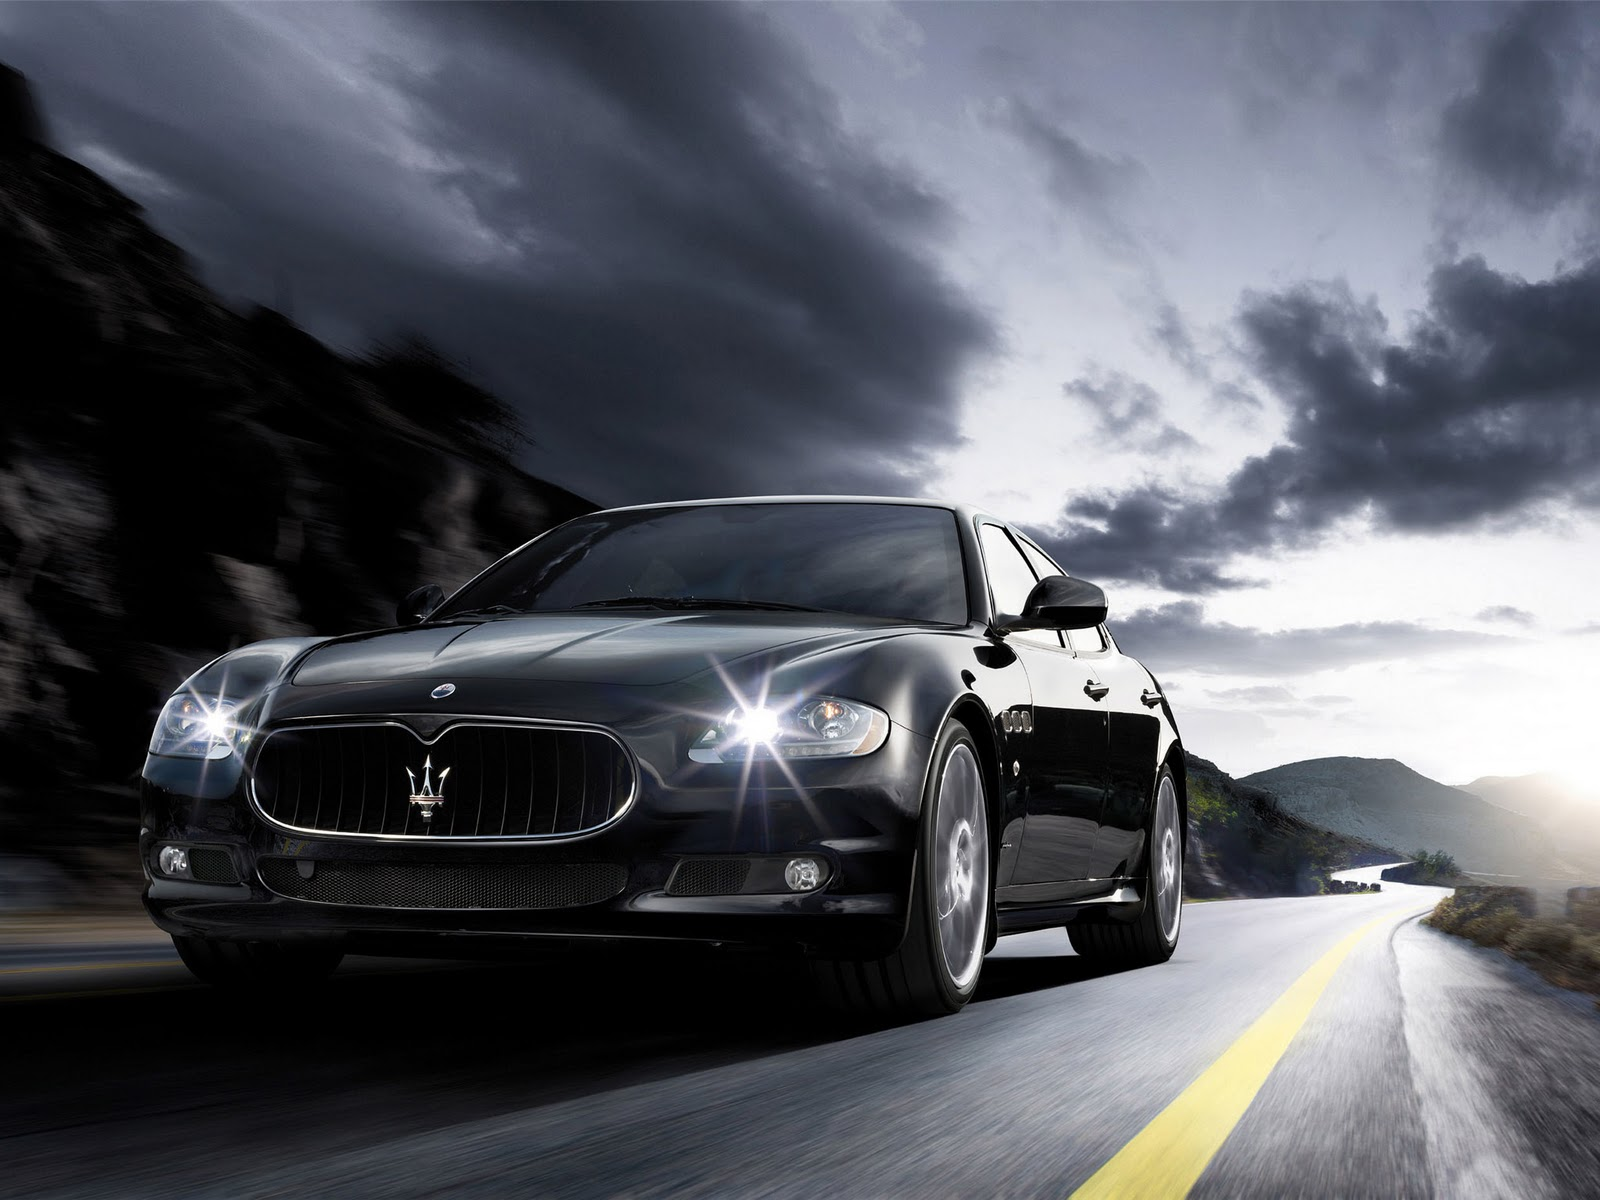 Cars HD Wallpapers Maserati Quattroporte S Sport Car HD Wall 1600x1200